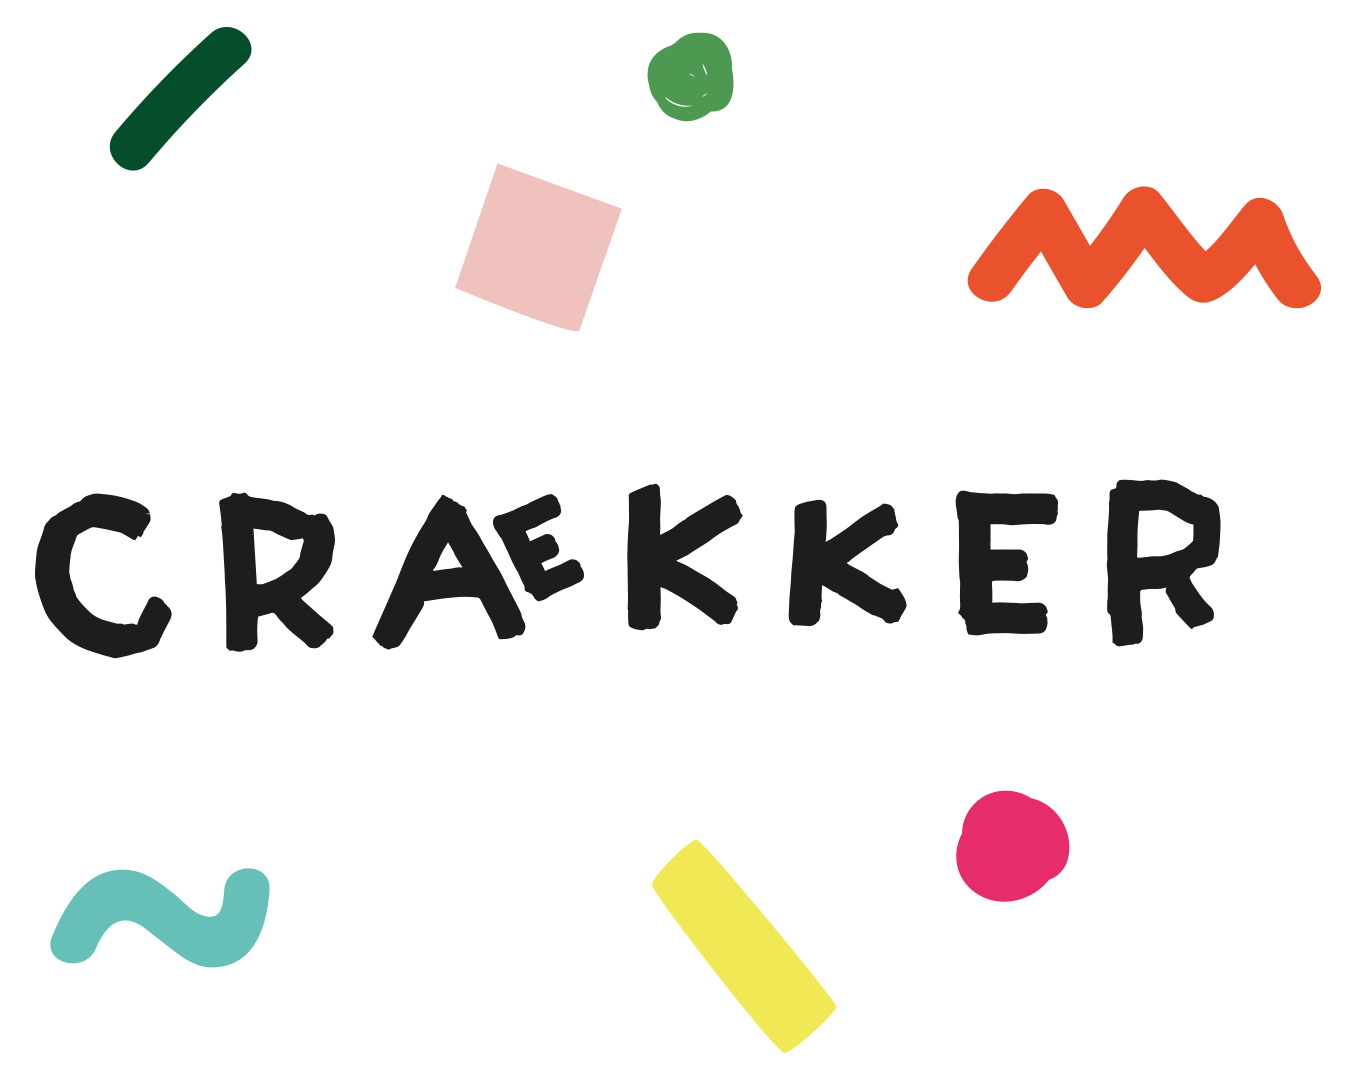 CRAEKKER webshop kids backpacks and kids bags, small business, startup, family business